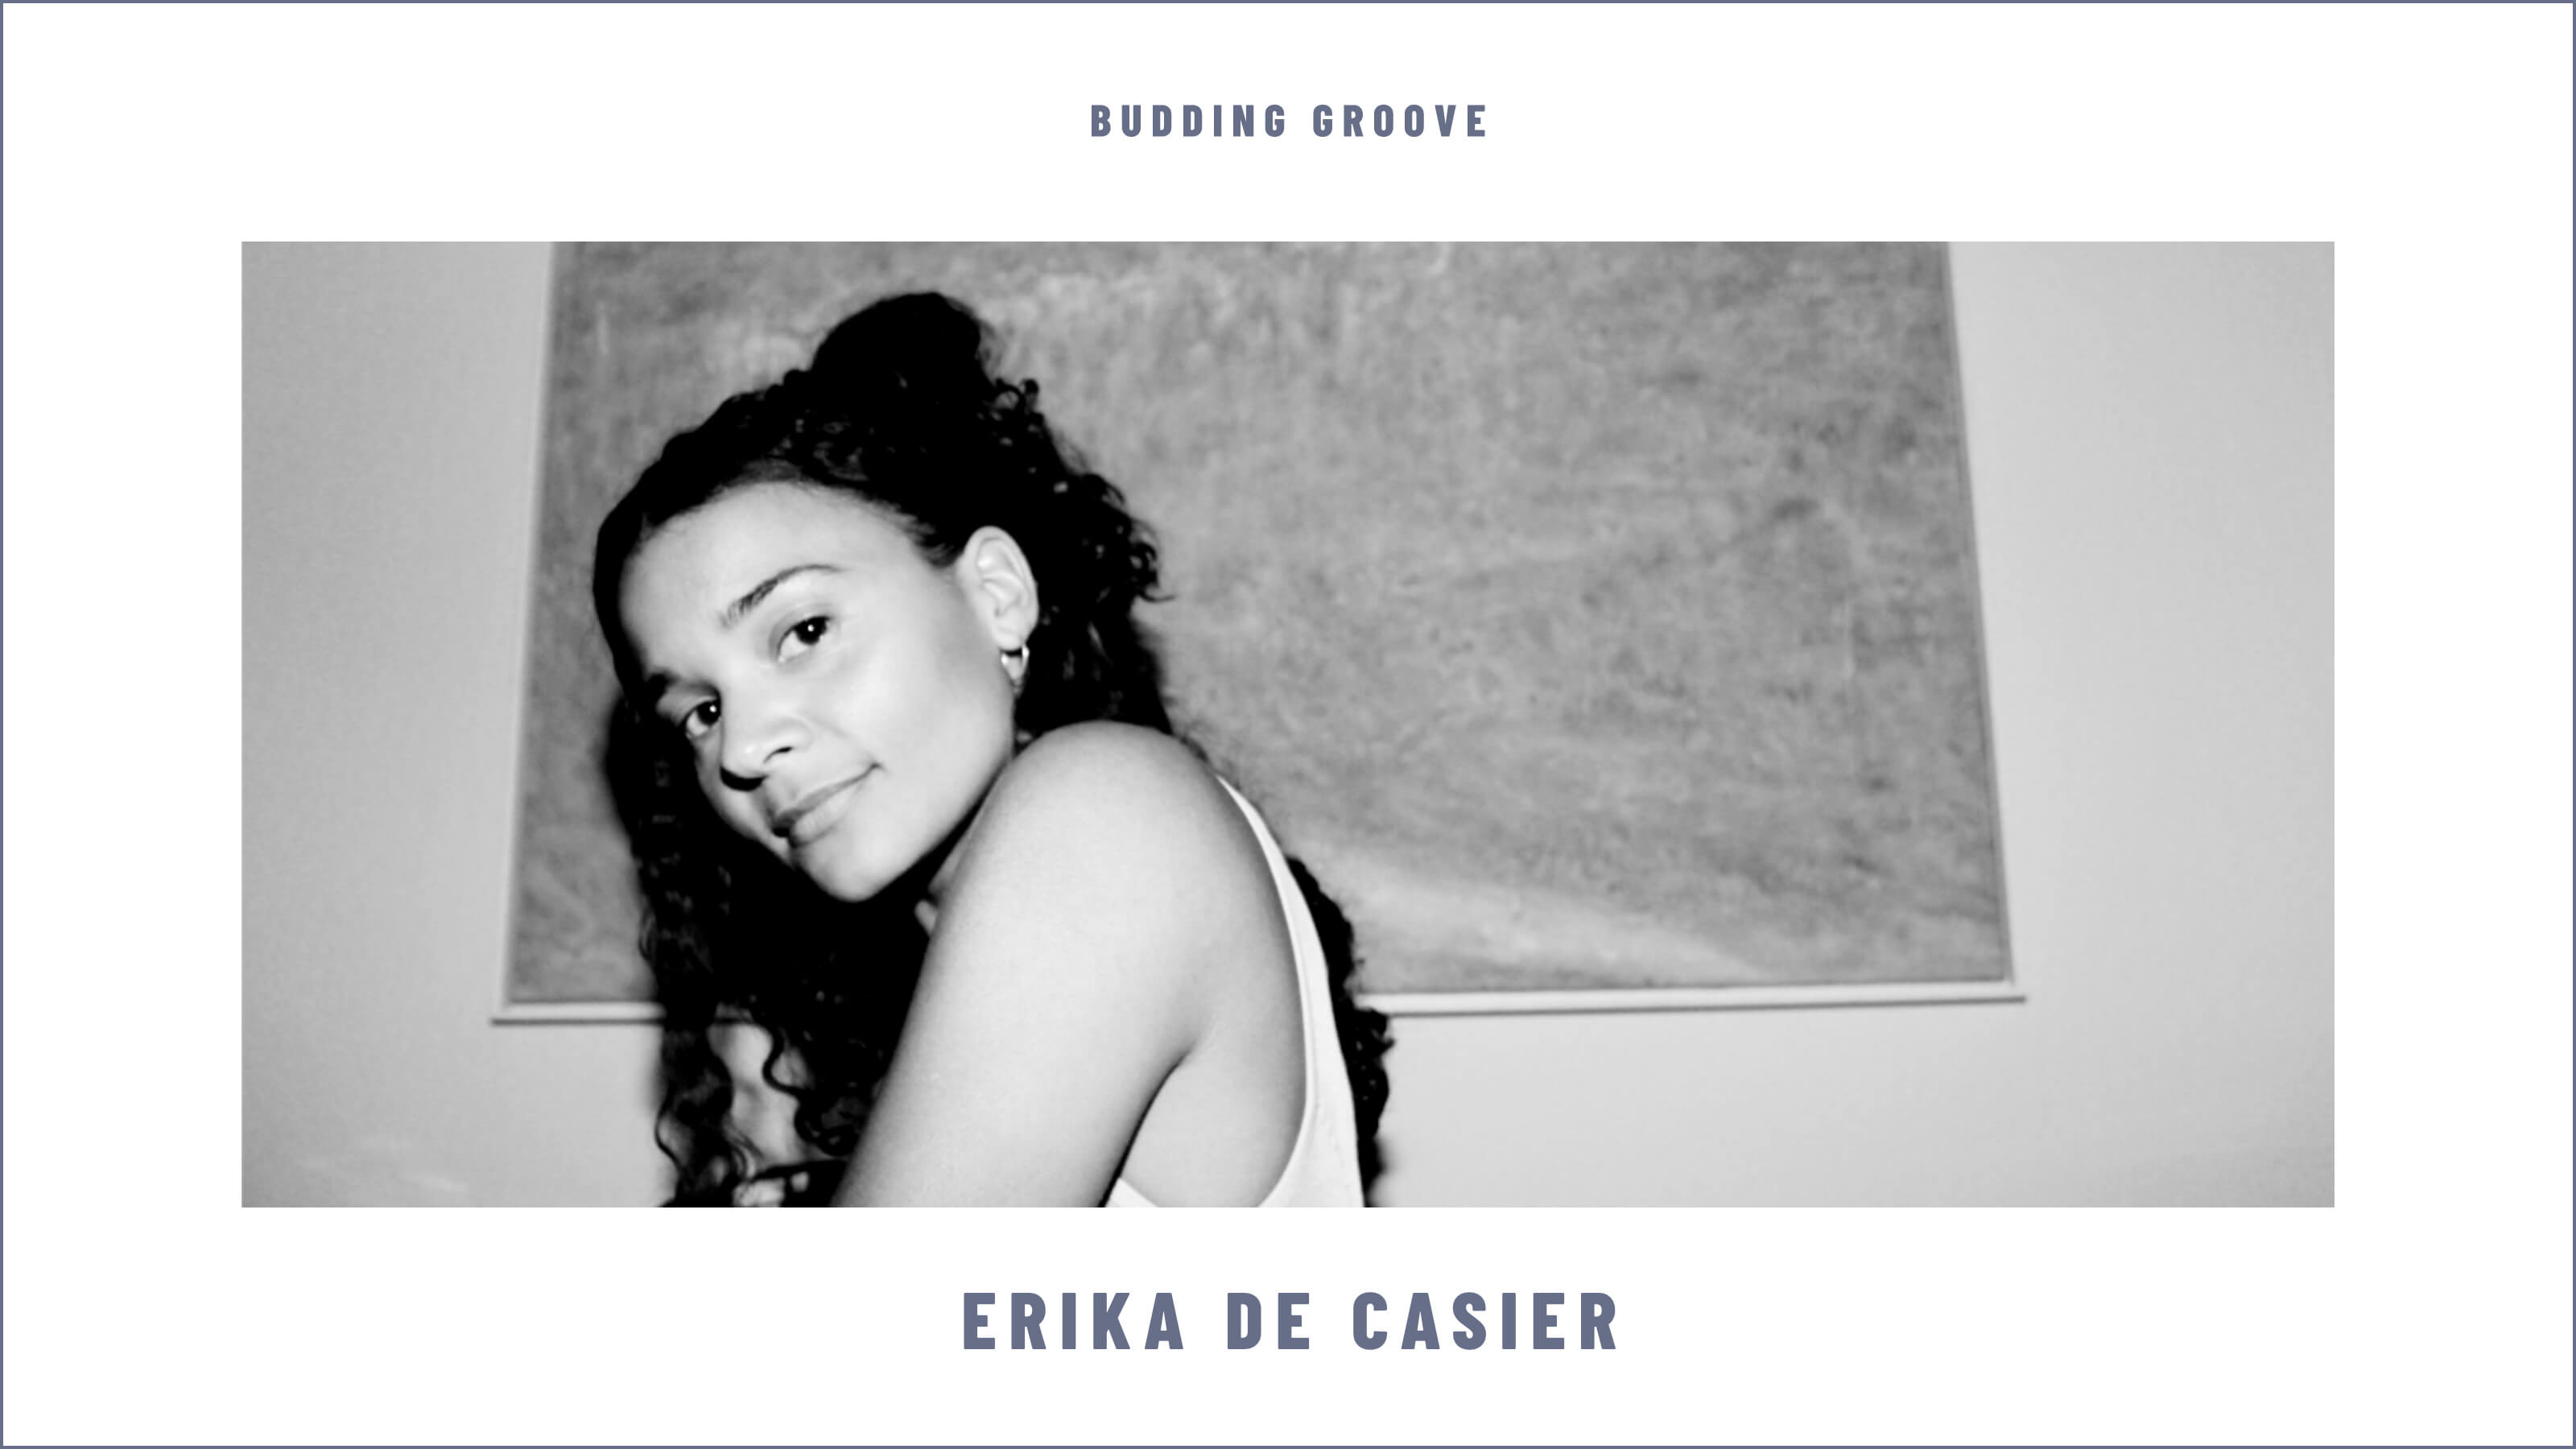 Budding Groove: Erika de Casier